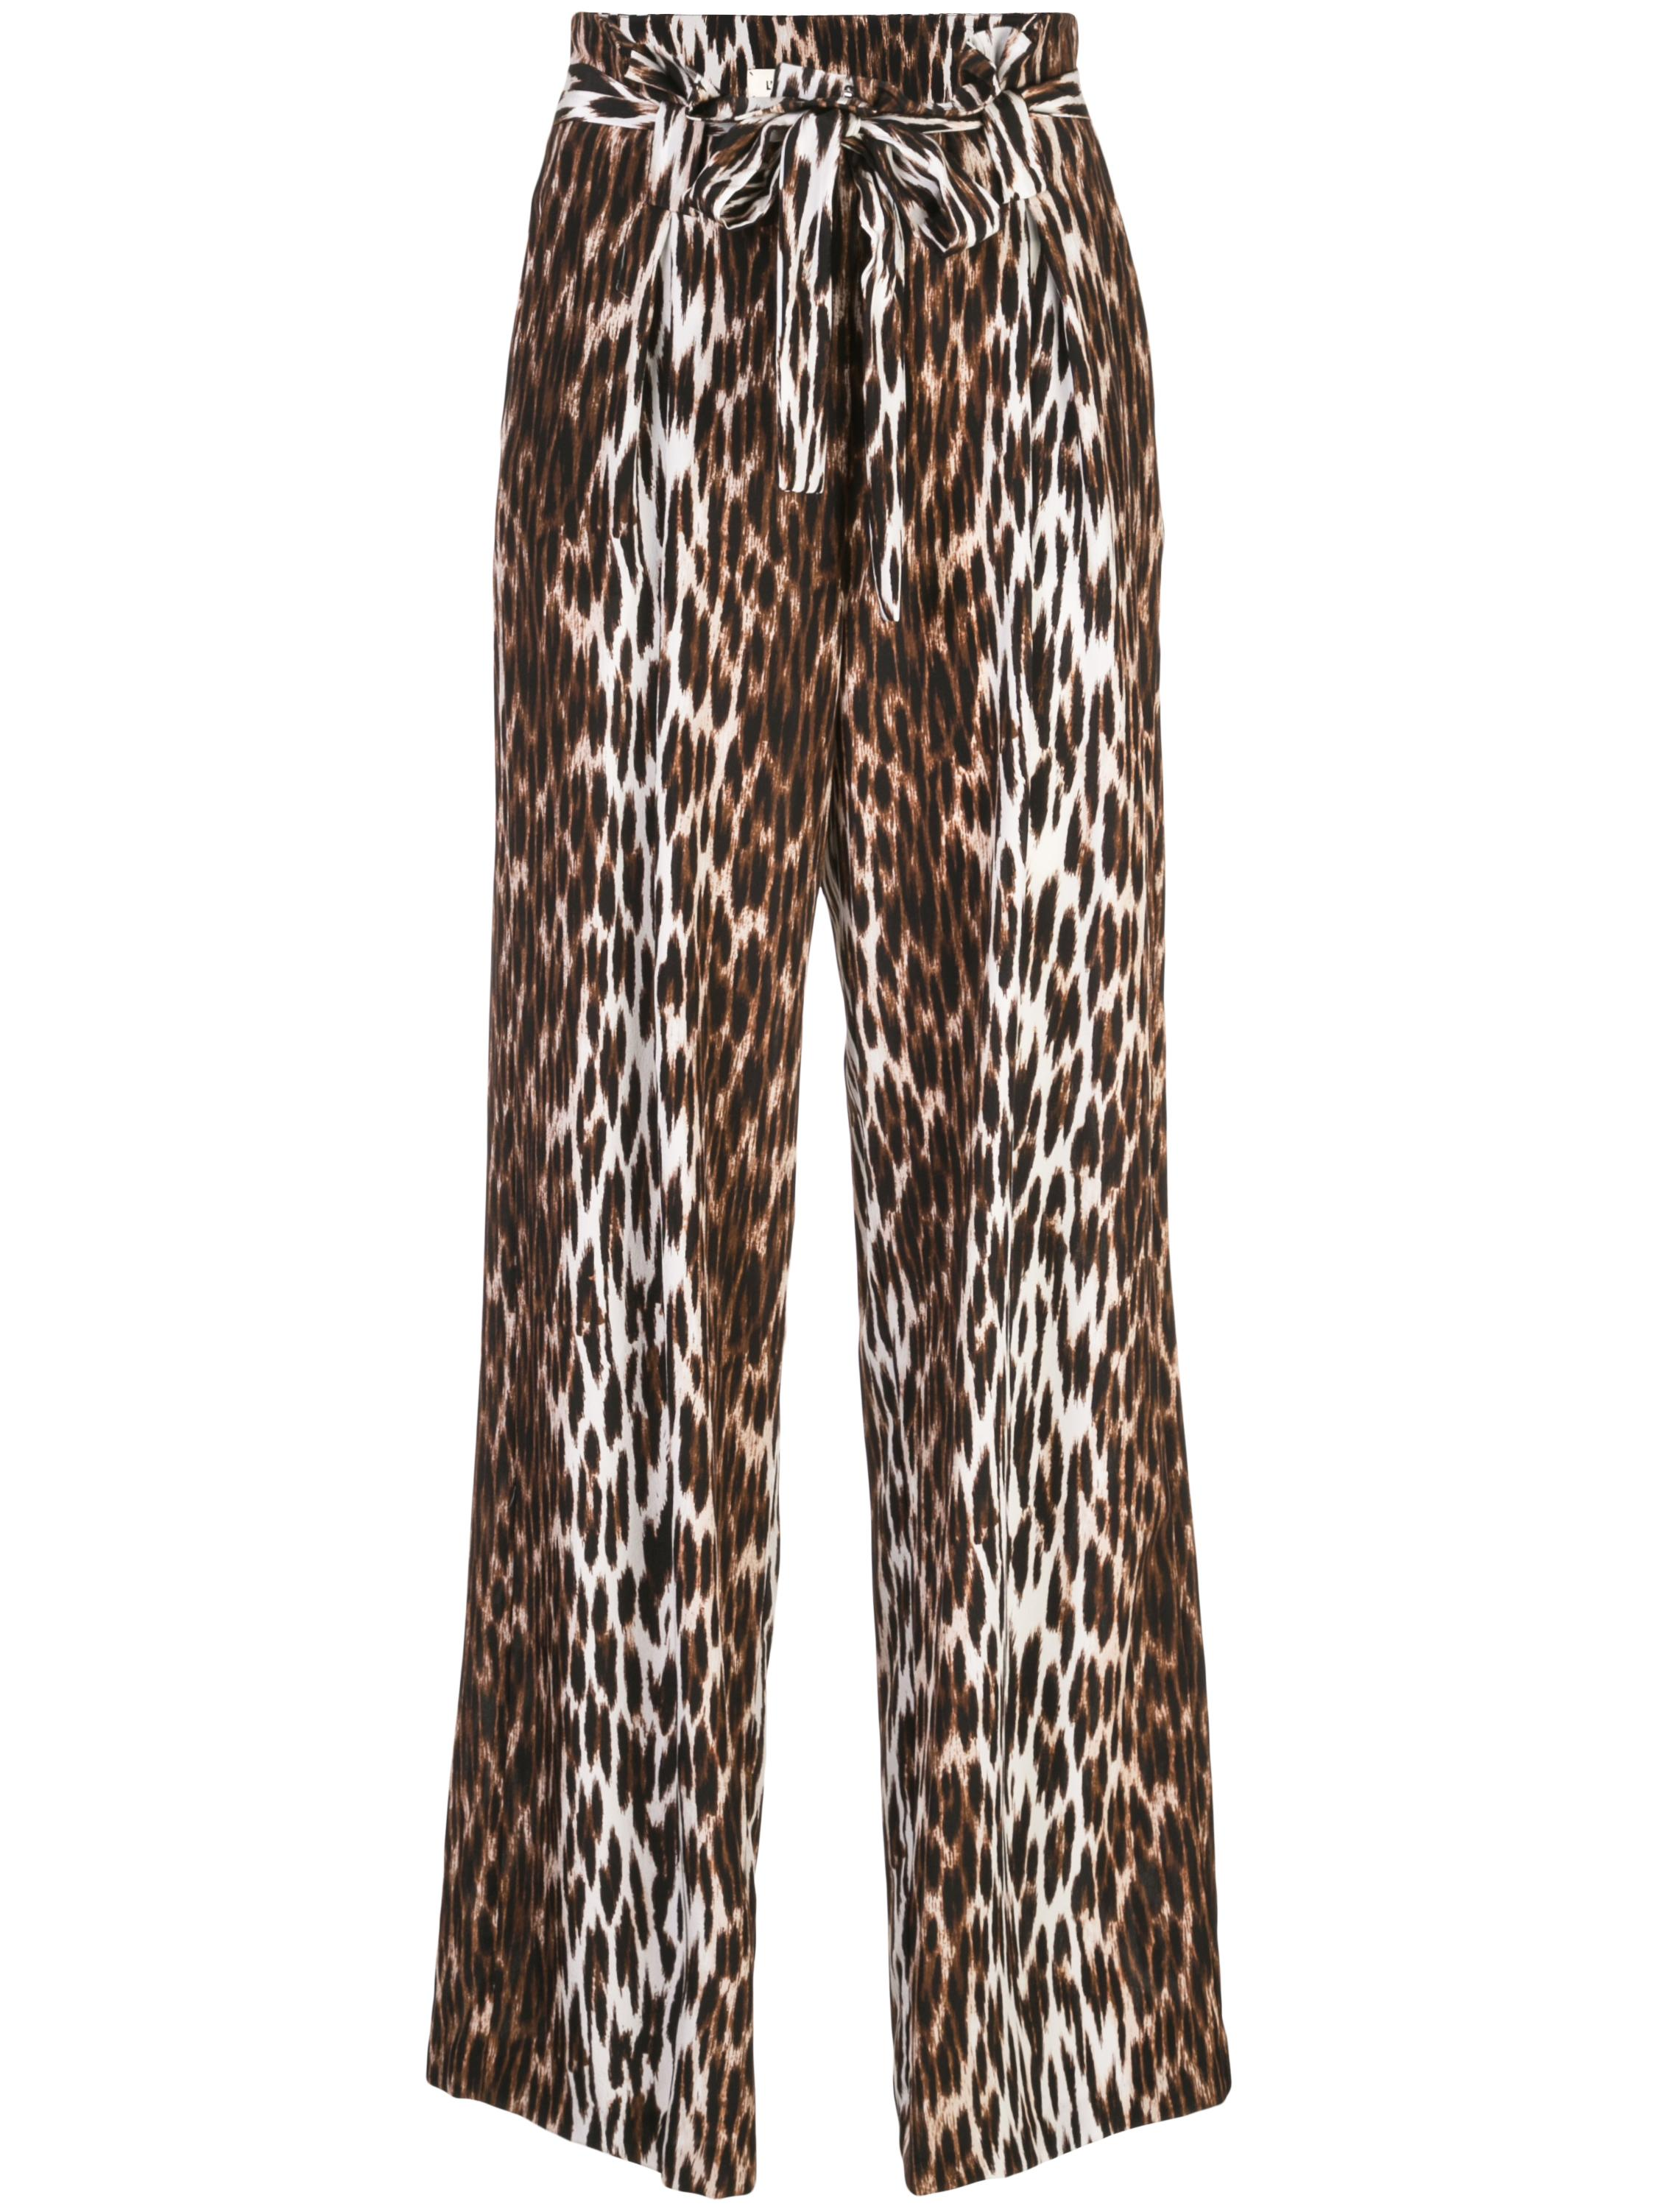 Bobby Leopard Paperbag Pant 33inches